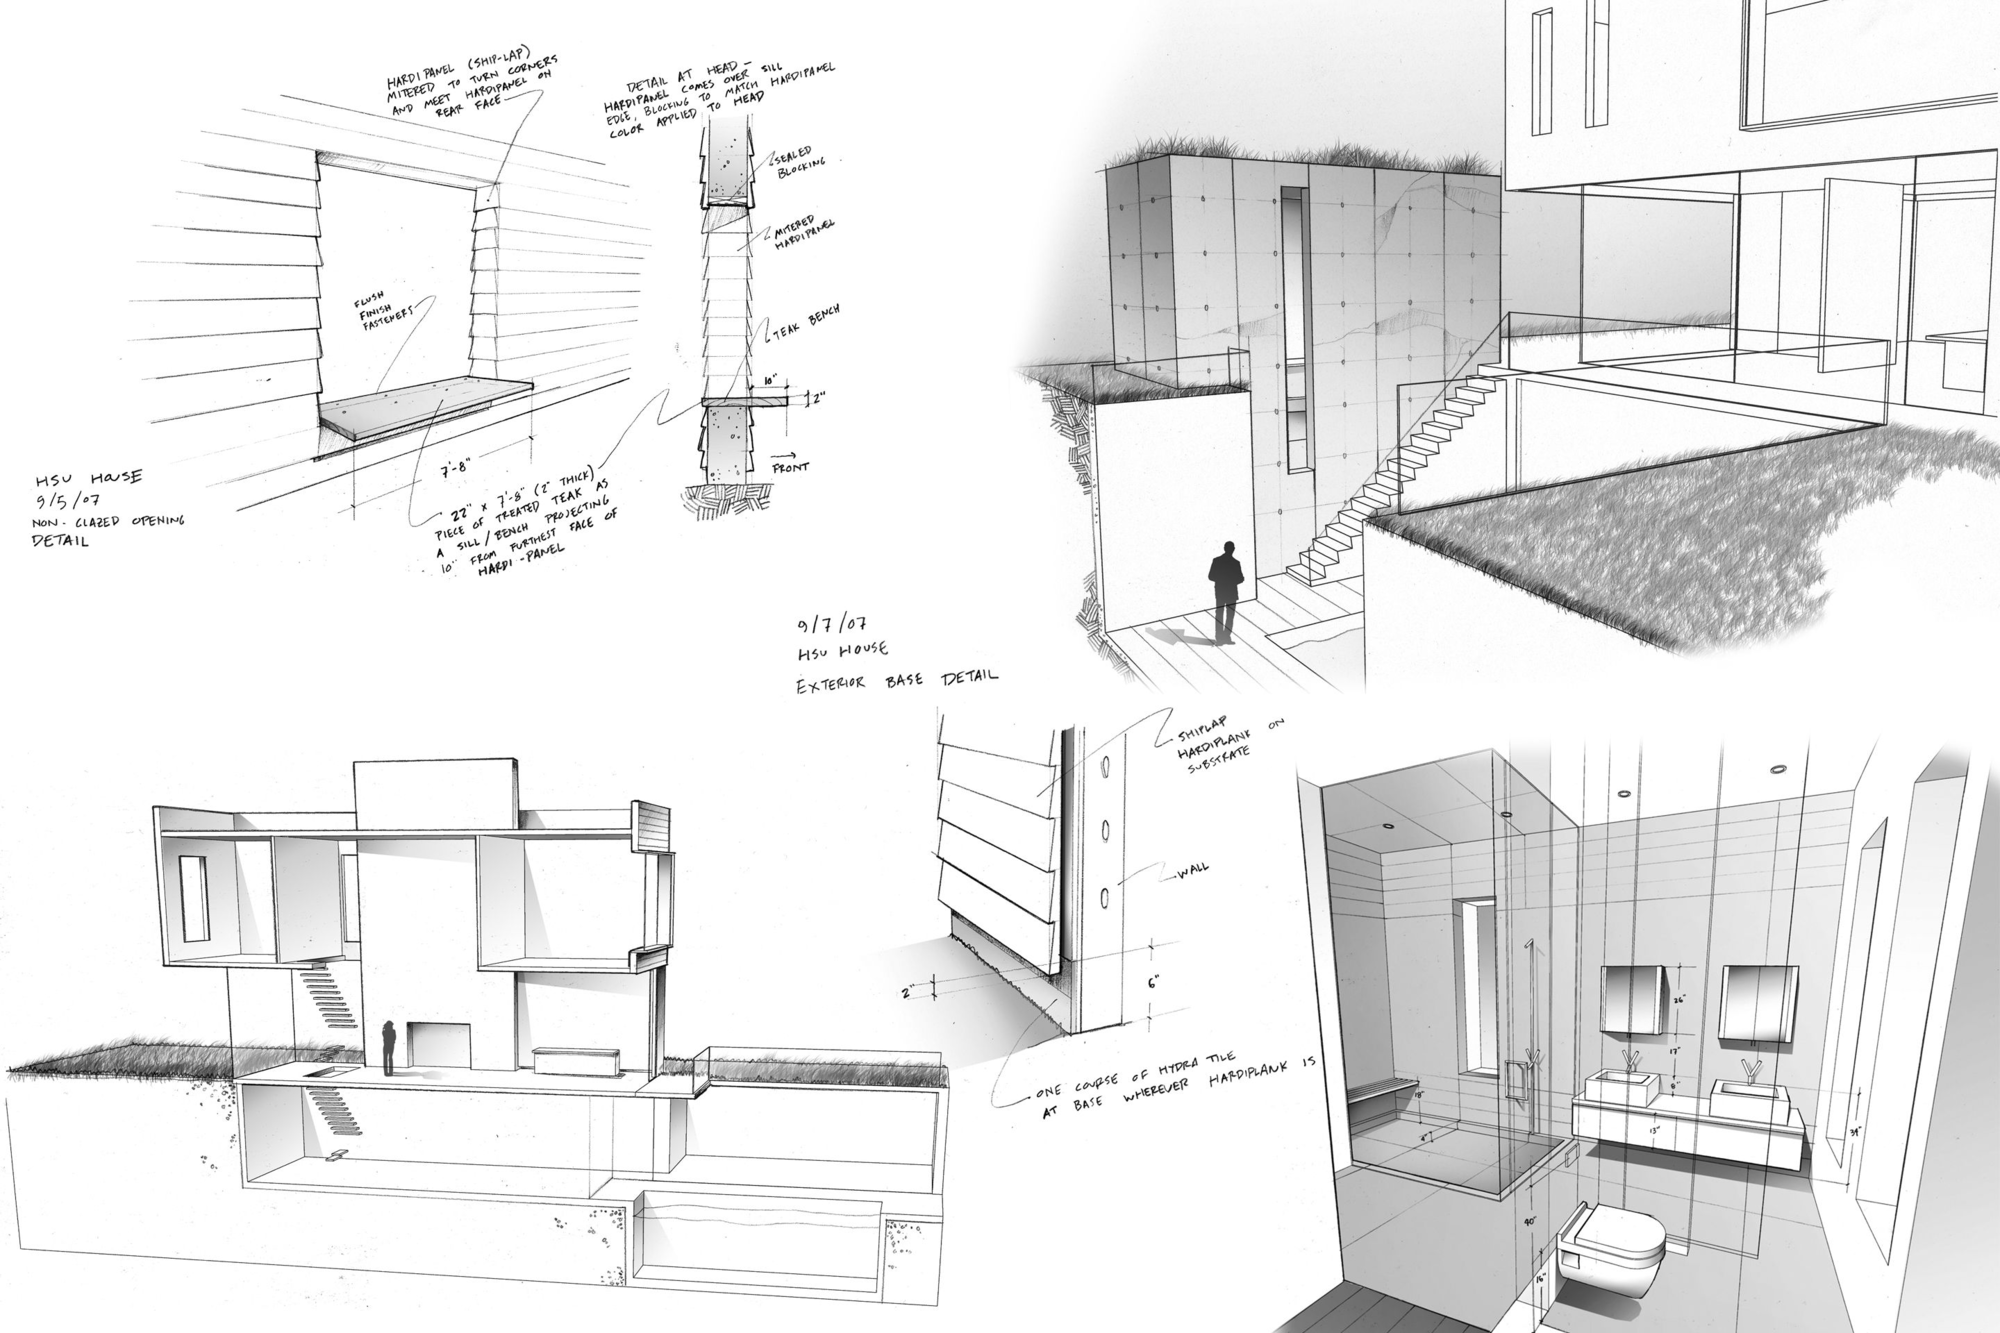 Office furniture design sketches - 194 Best Bocetos Y Planos Images On Pinterest Architecture Drawings And Architecture Graphics